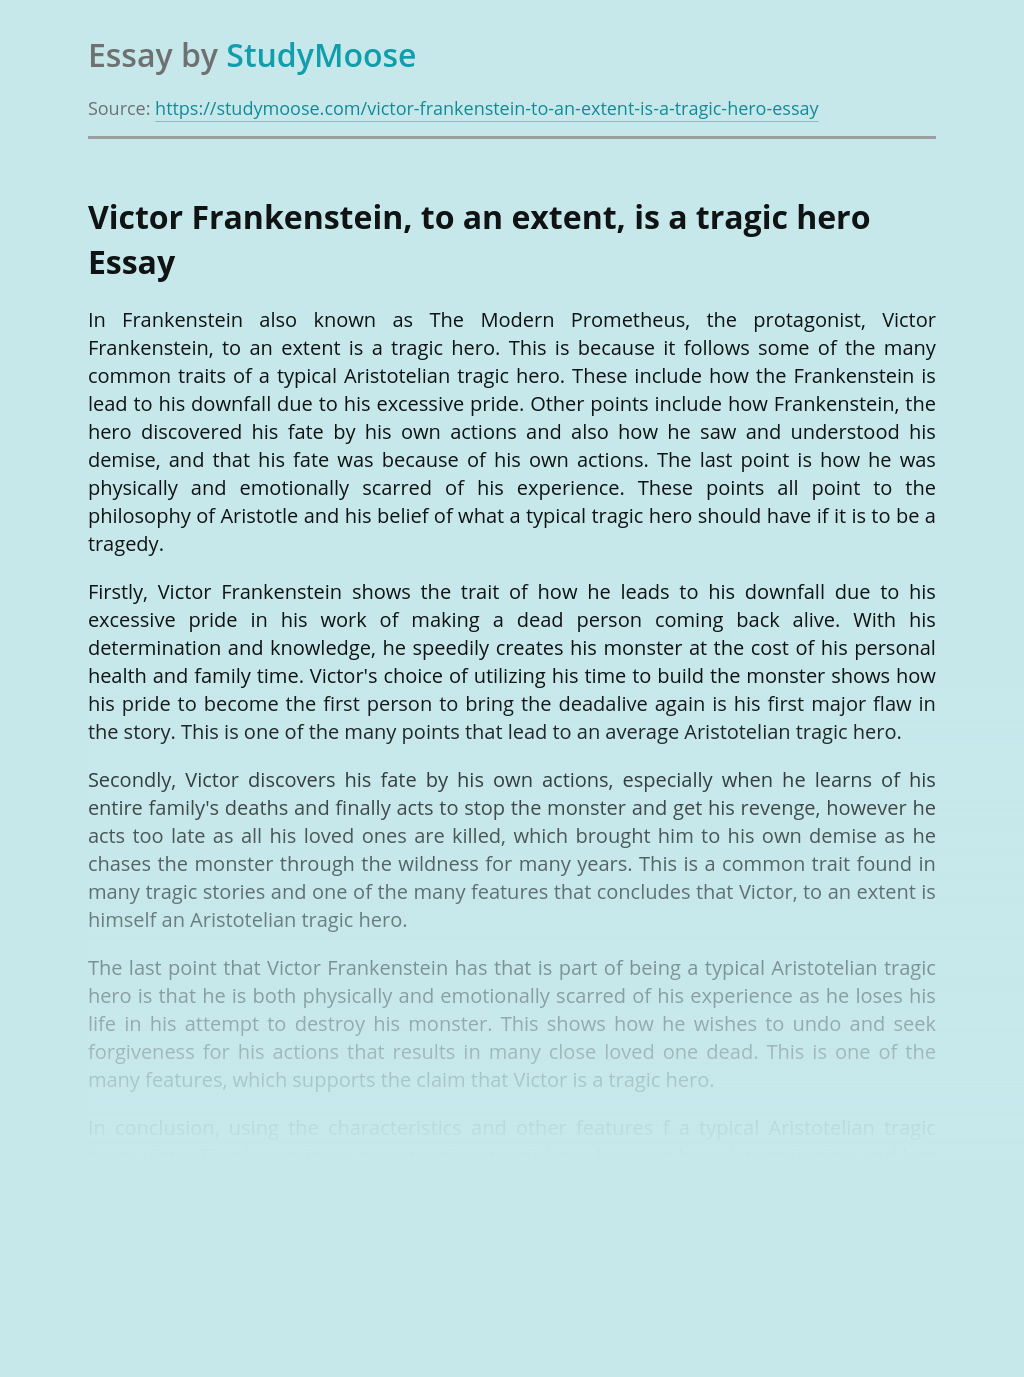 Victor Frankenstein, to an extent, is a tragic hero